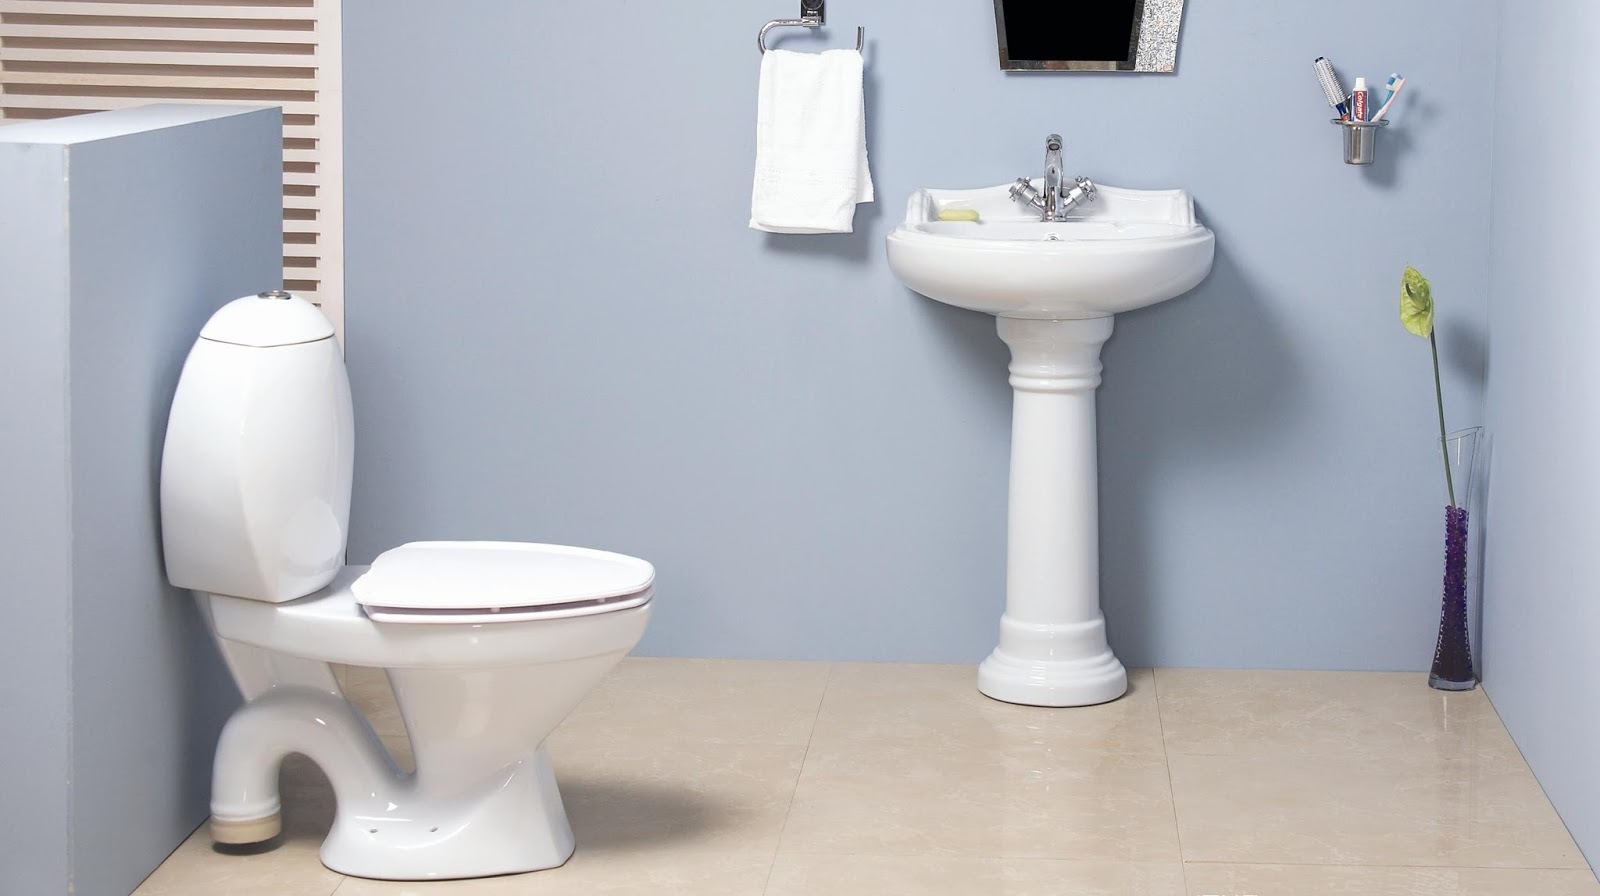 Bathroom fitting manufacturers - Bathrooms And Its Details Like Bath Fittings Bathroom Flooring As A General Rule Are Ignored In This Manner One Needs To Admission Thee Well That